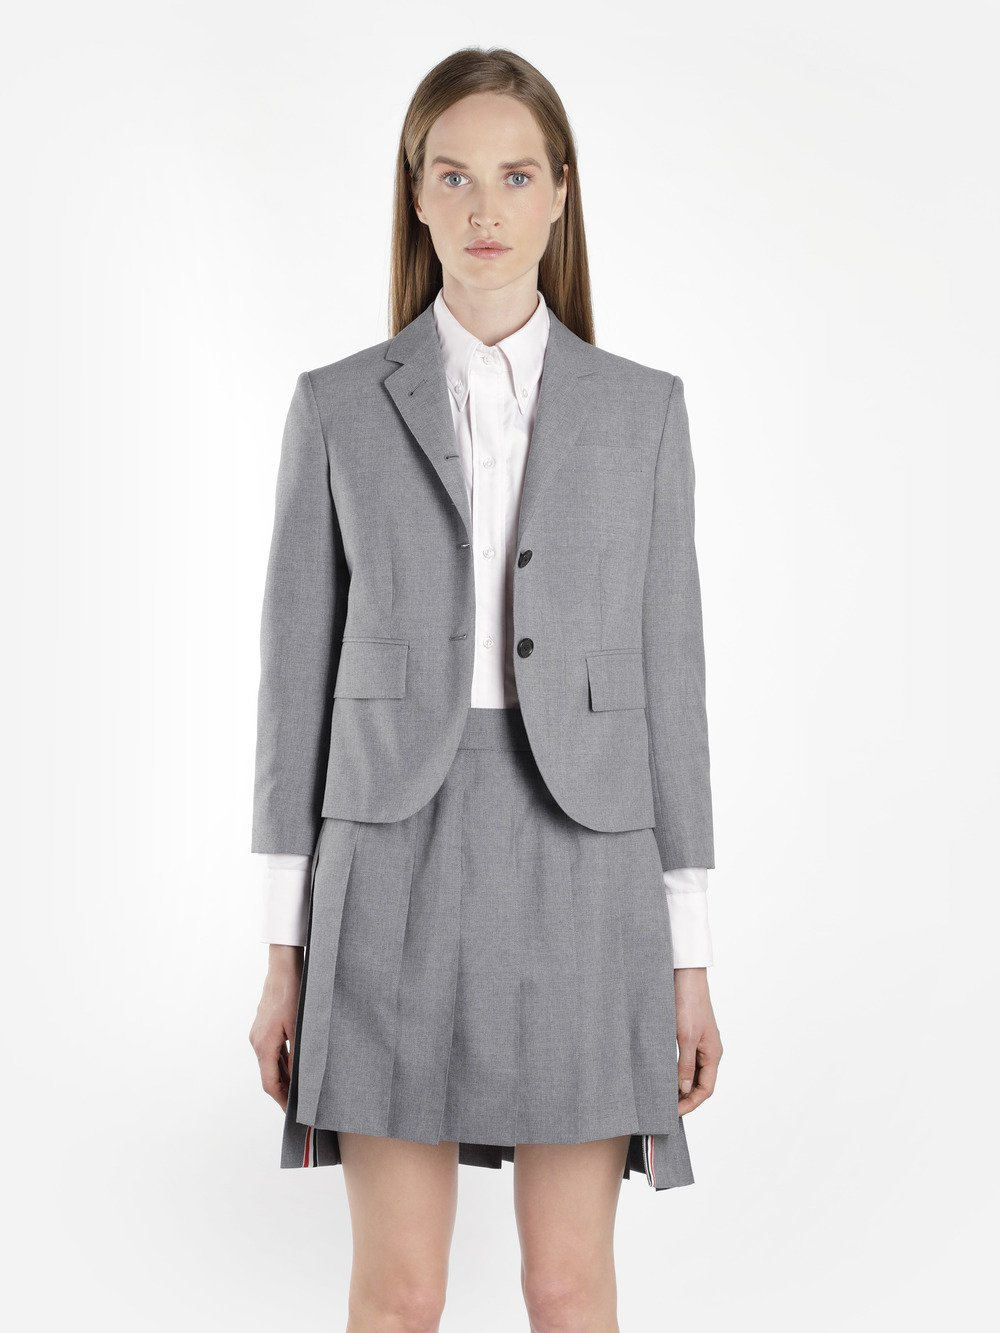 Classic Breasted Sport Coat In School Uniform Plain Wool Blazer in Grey